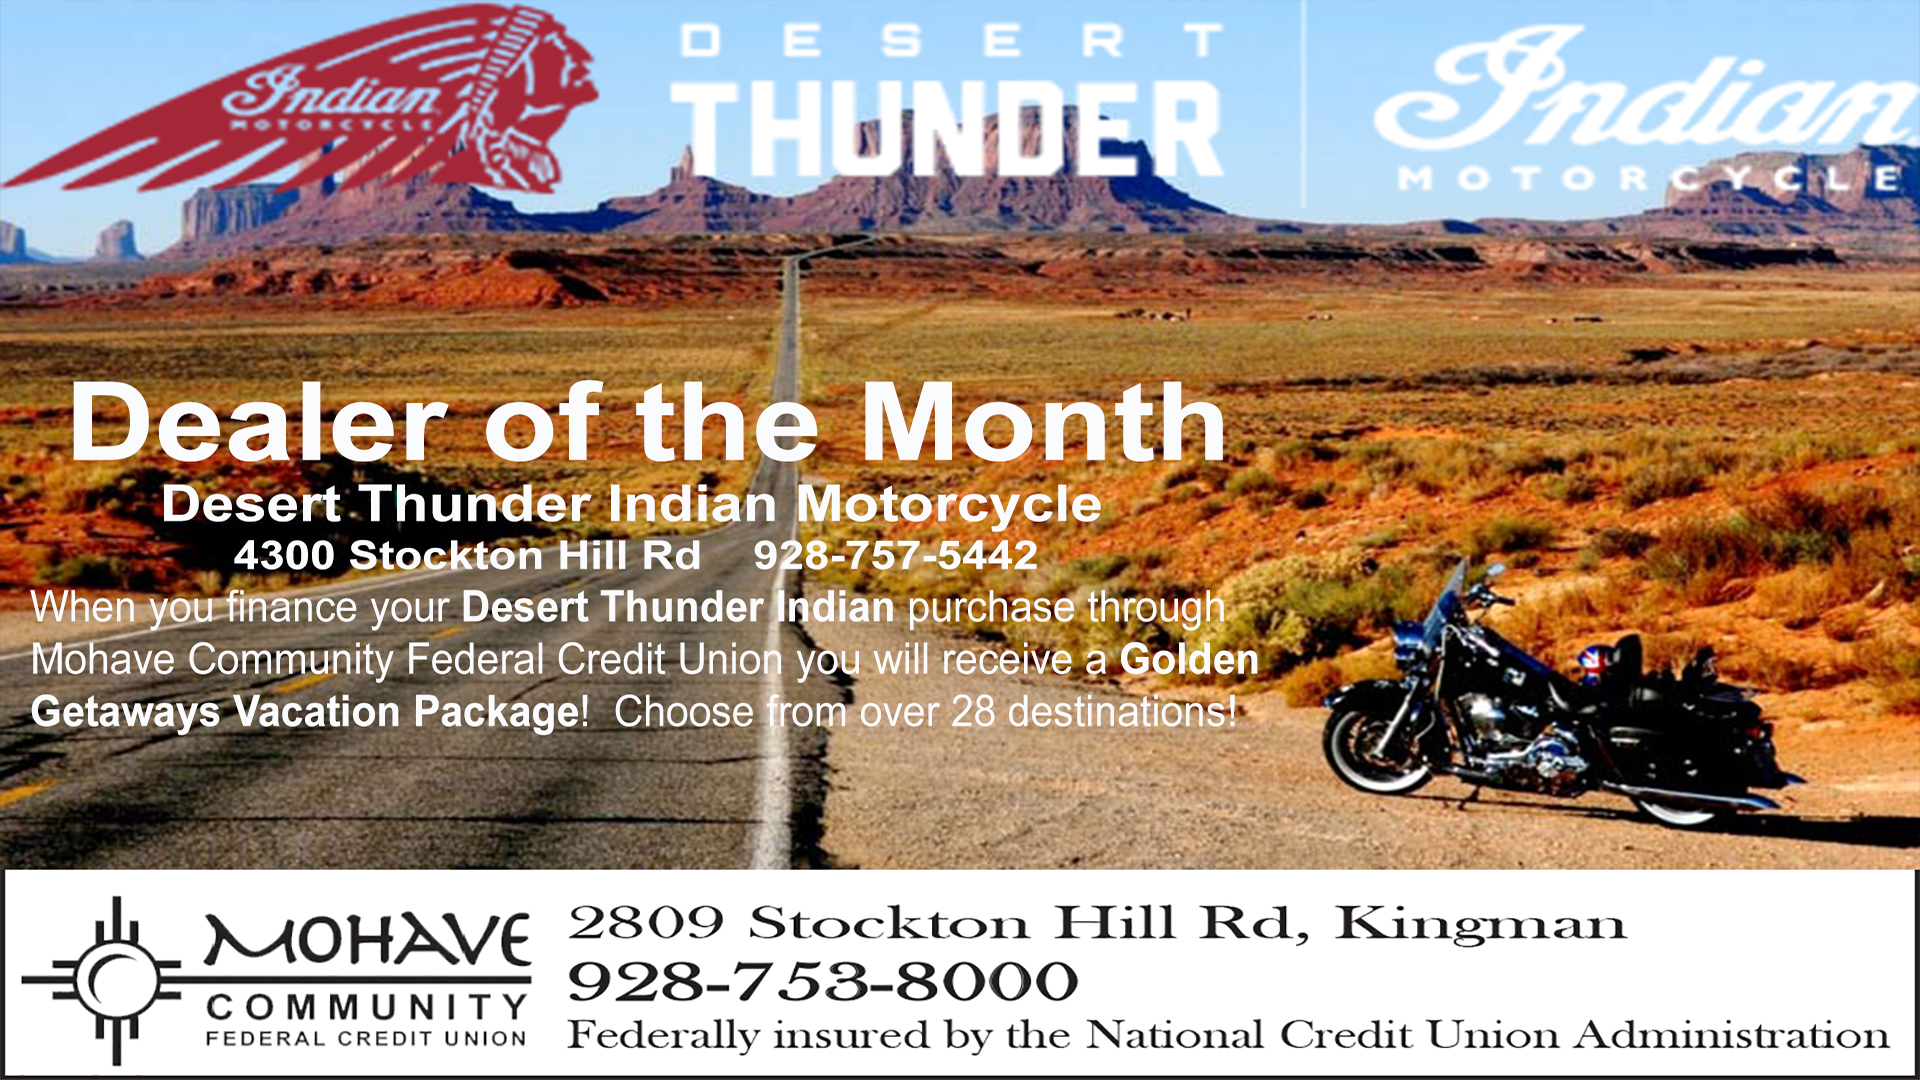 Our dealer of the month is Desert Thunder Motor Sports. Please call 928-753-8000 for more information.